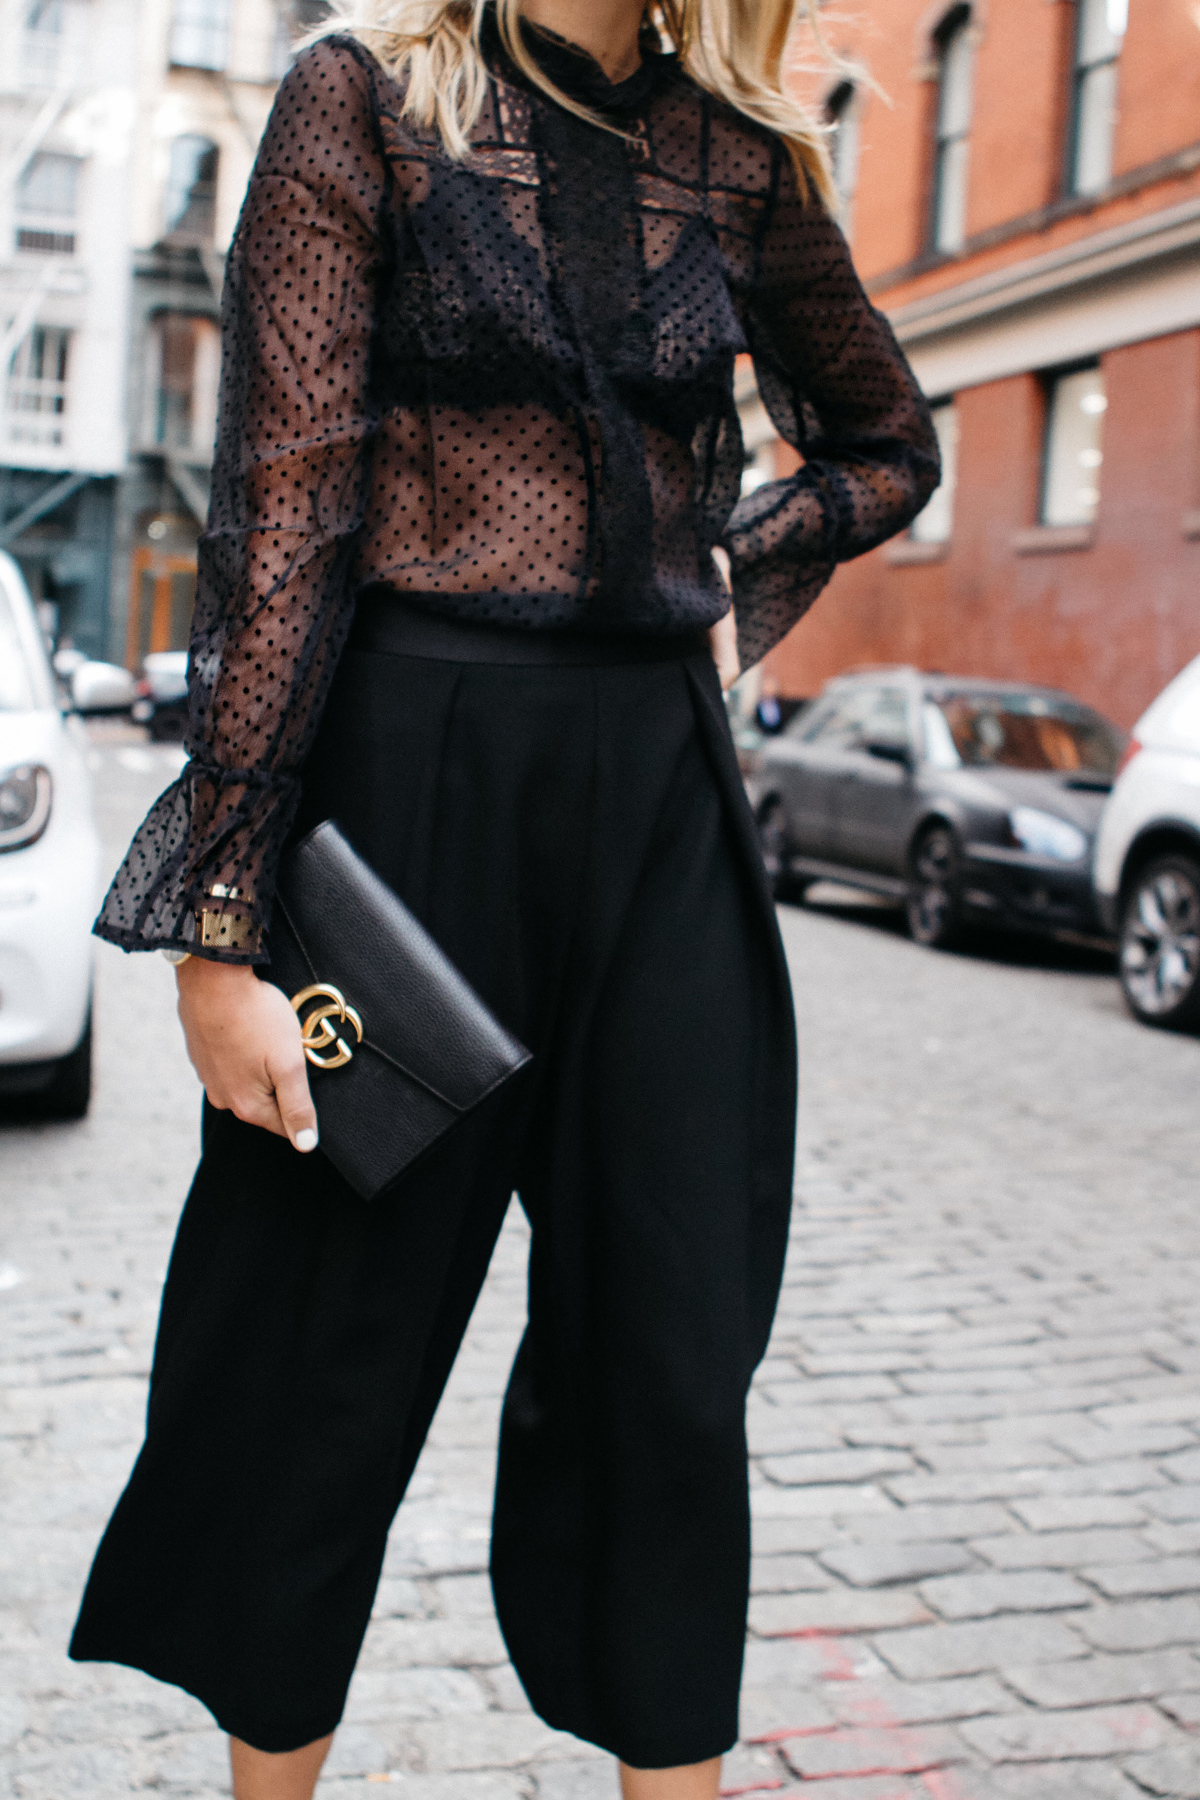 Anine Bing Black Lace Top Black Bra Black Culottes Fashion Jackson Dallas Blogger Fashion Blogger Street Style NYFW